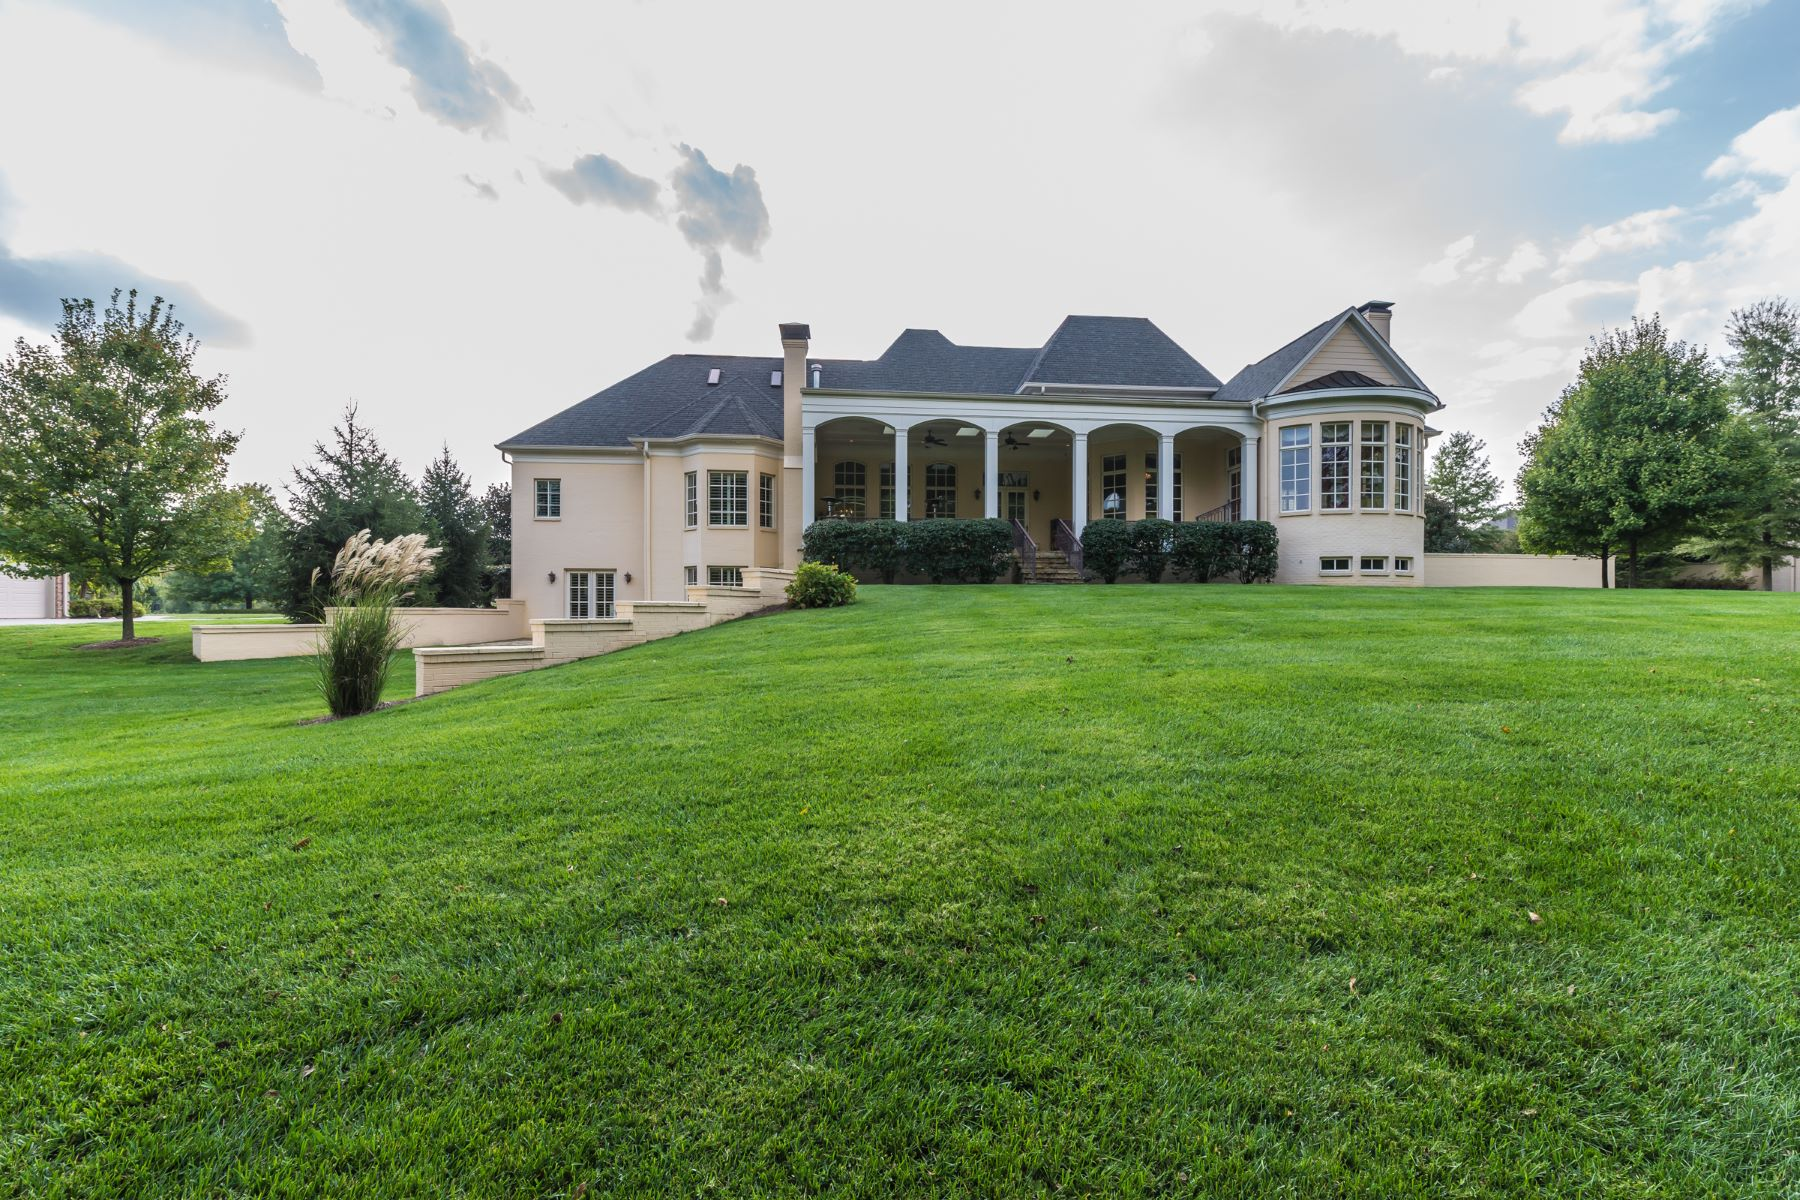 Additional photo for property listing at 7814 Farm Spring Place 7814 Farm Spring Drive Prospect, Kentucky 40059 United States